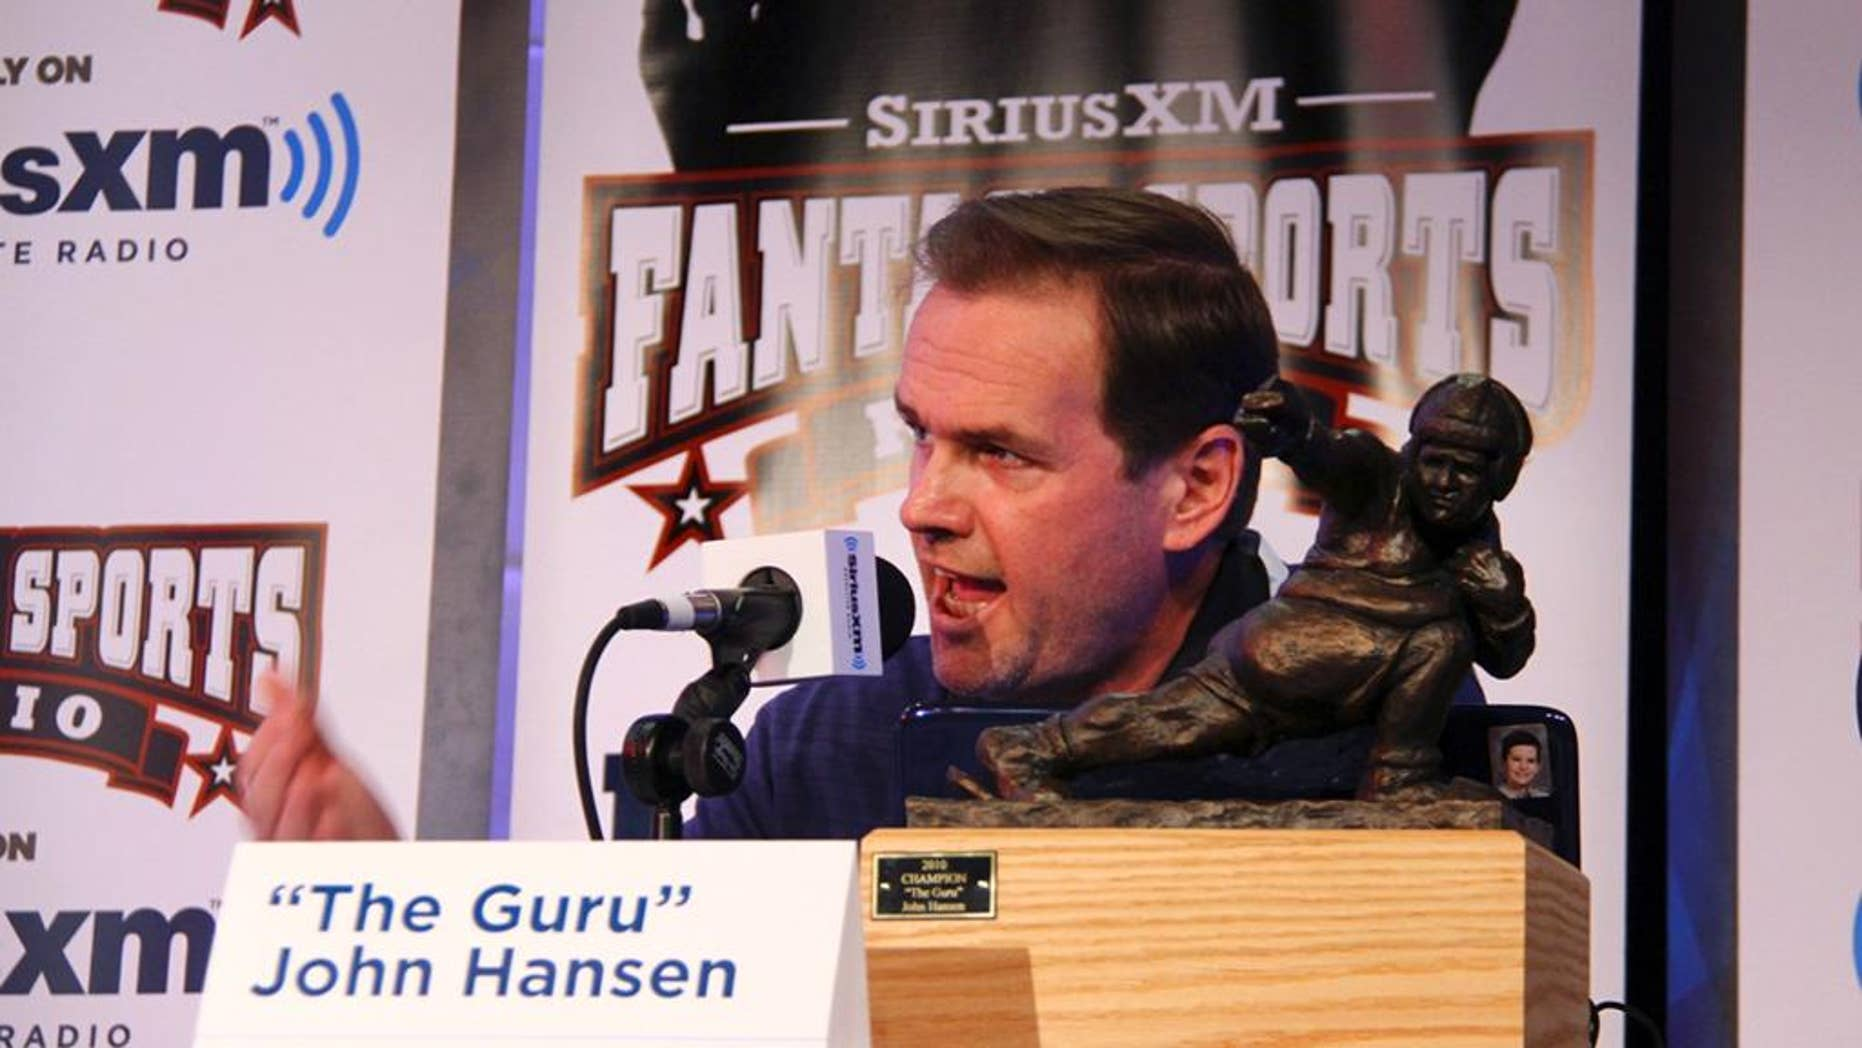 In this photo taken on July 28, 2011, and provided by SiriusXM, John Hansen speaks at the SiriusXM Celebrity Fantasy Football Draft at the Hard Rock Cafe in New York. Hansen started out faxing and snail-mailing his fantasy football advice and hosting a local cable TV show. Technology has supercharged the growth of fantasy leagues, and now Hansen appears nationally on satellite radio and television talking about who to start and sit. (AP Photo/SiriusXM, Maro Hagopian)